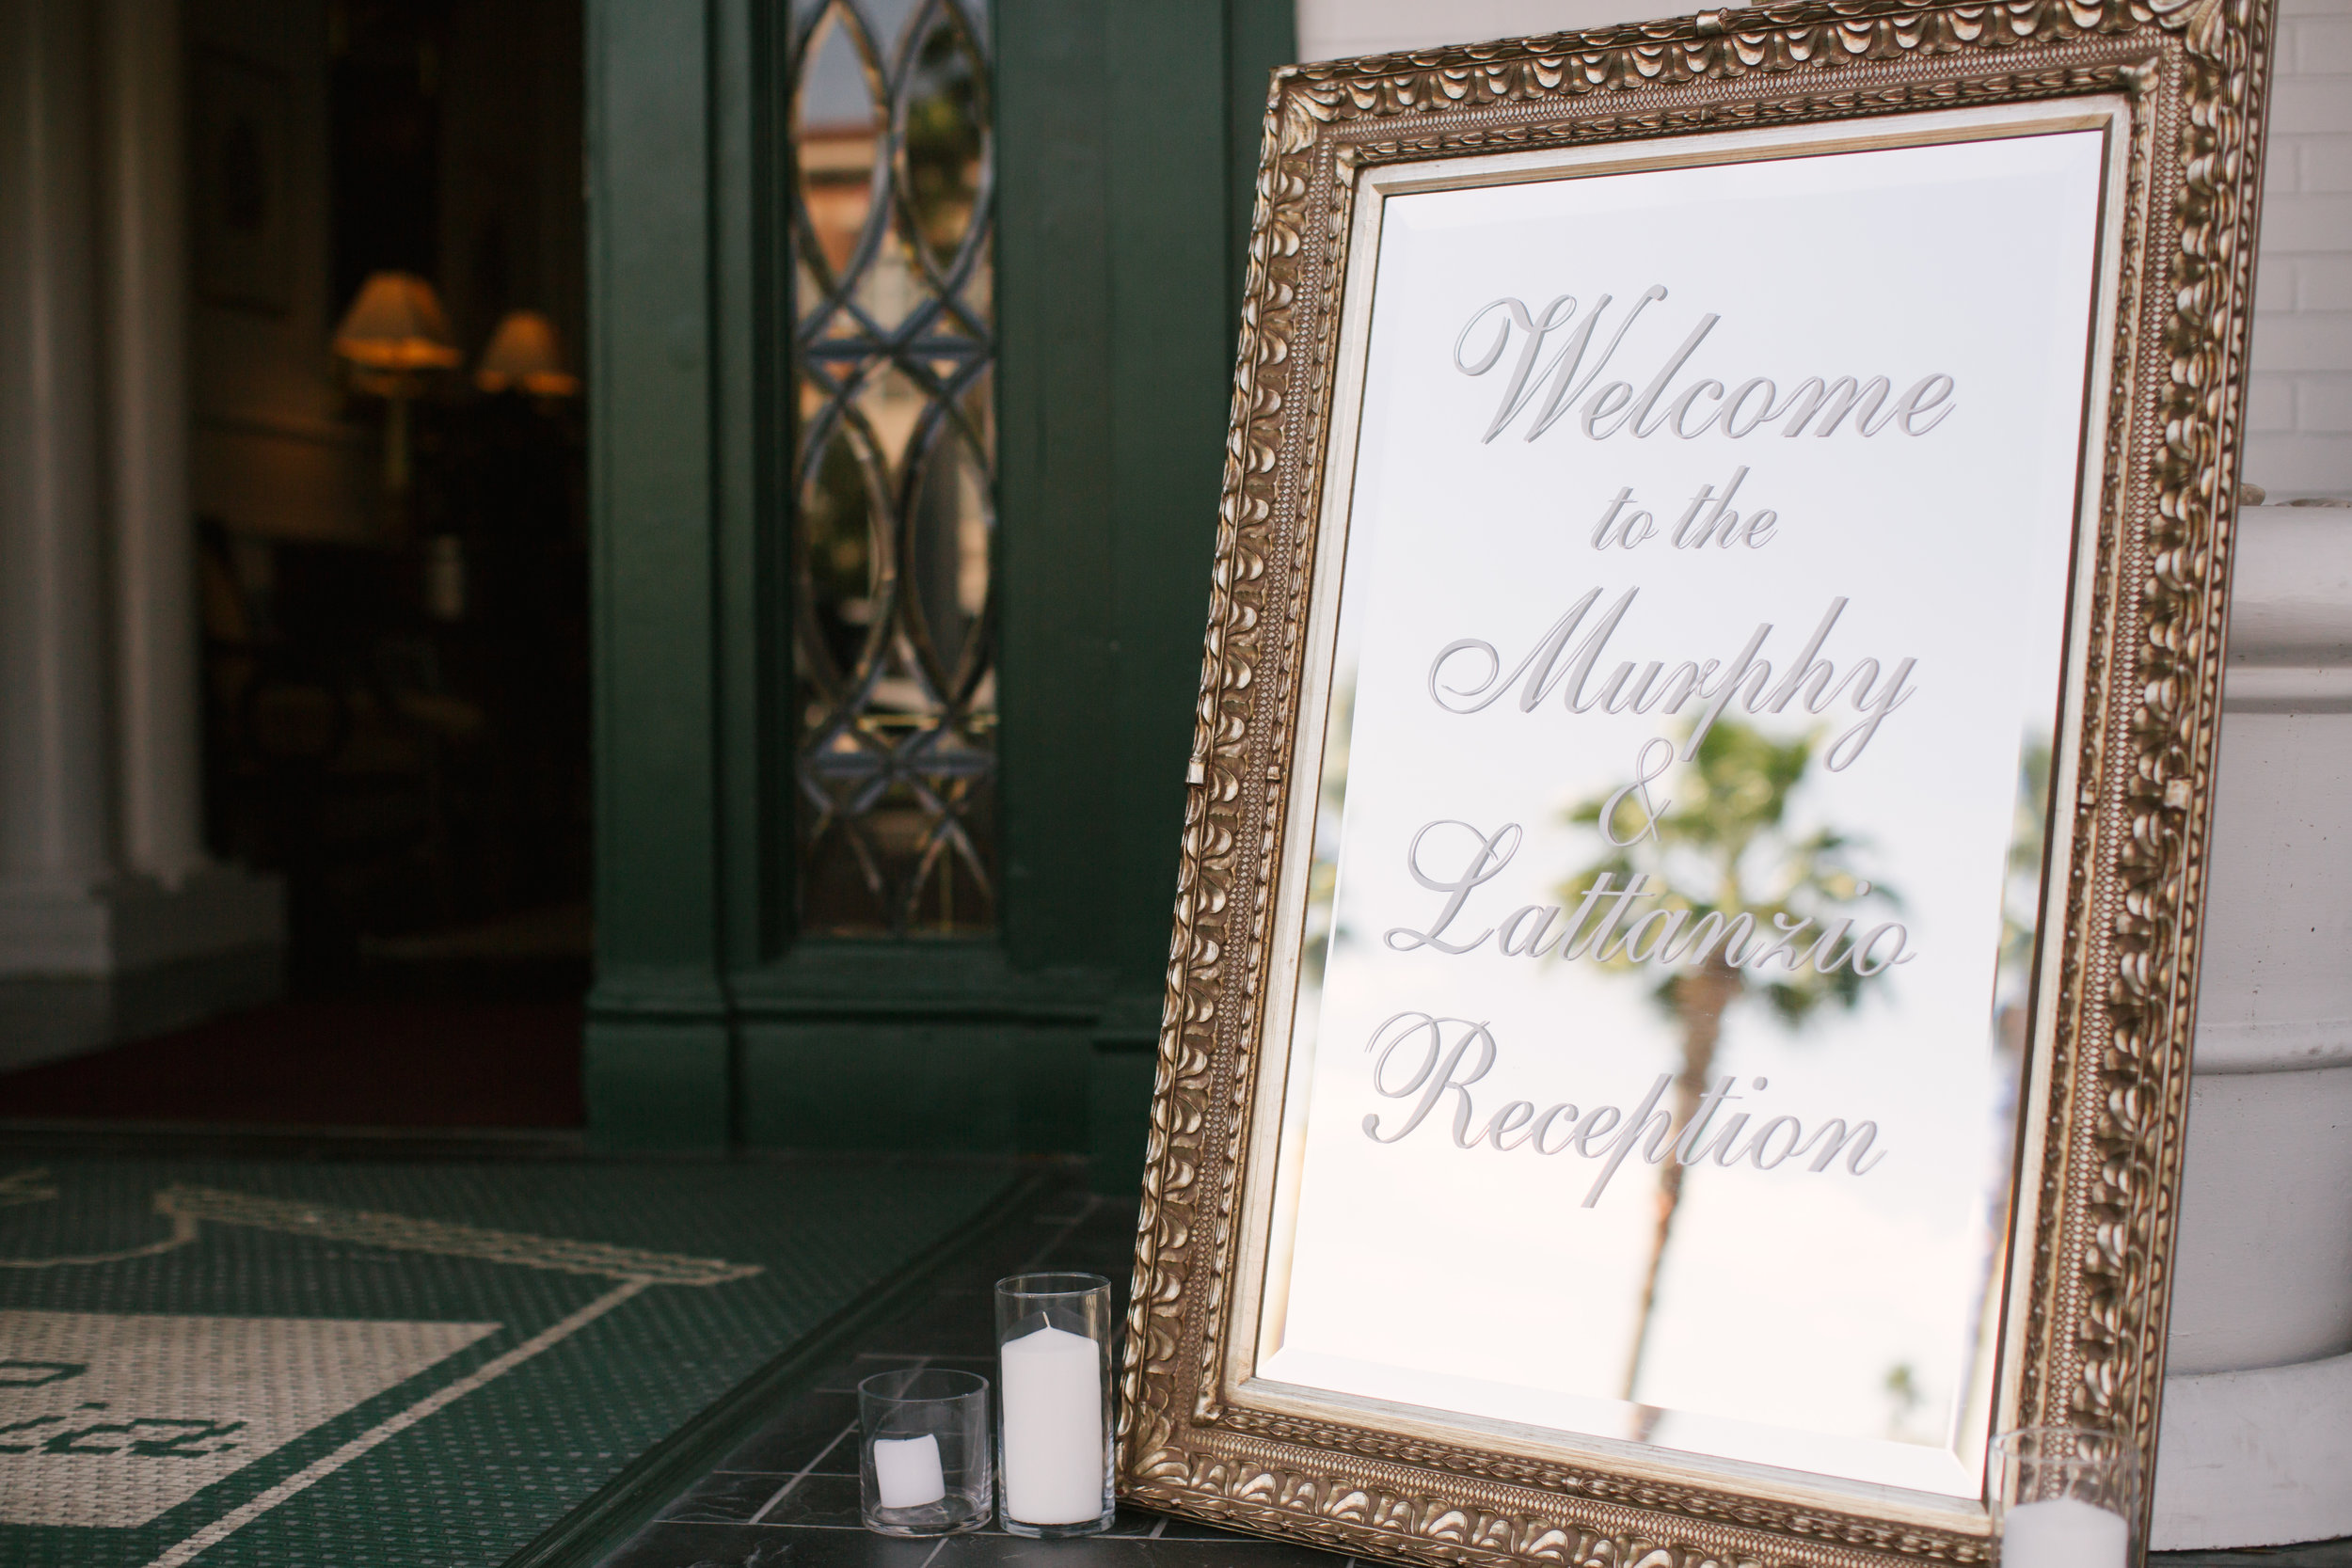 An engraved gold mirror surrounded by candles welcomed guests to the reception.